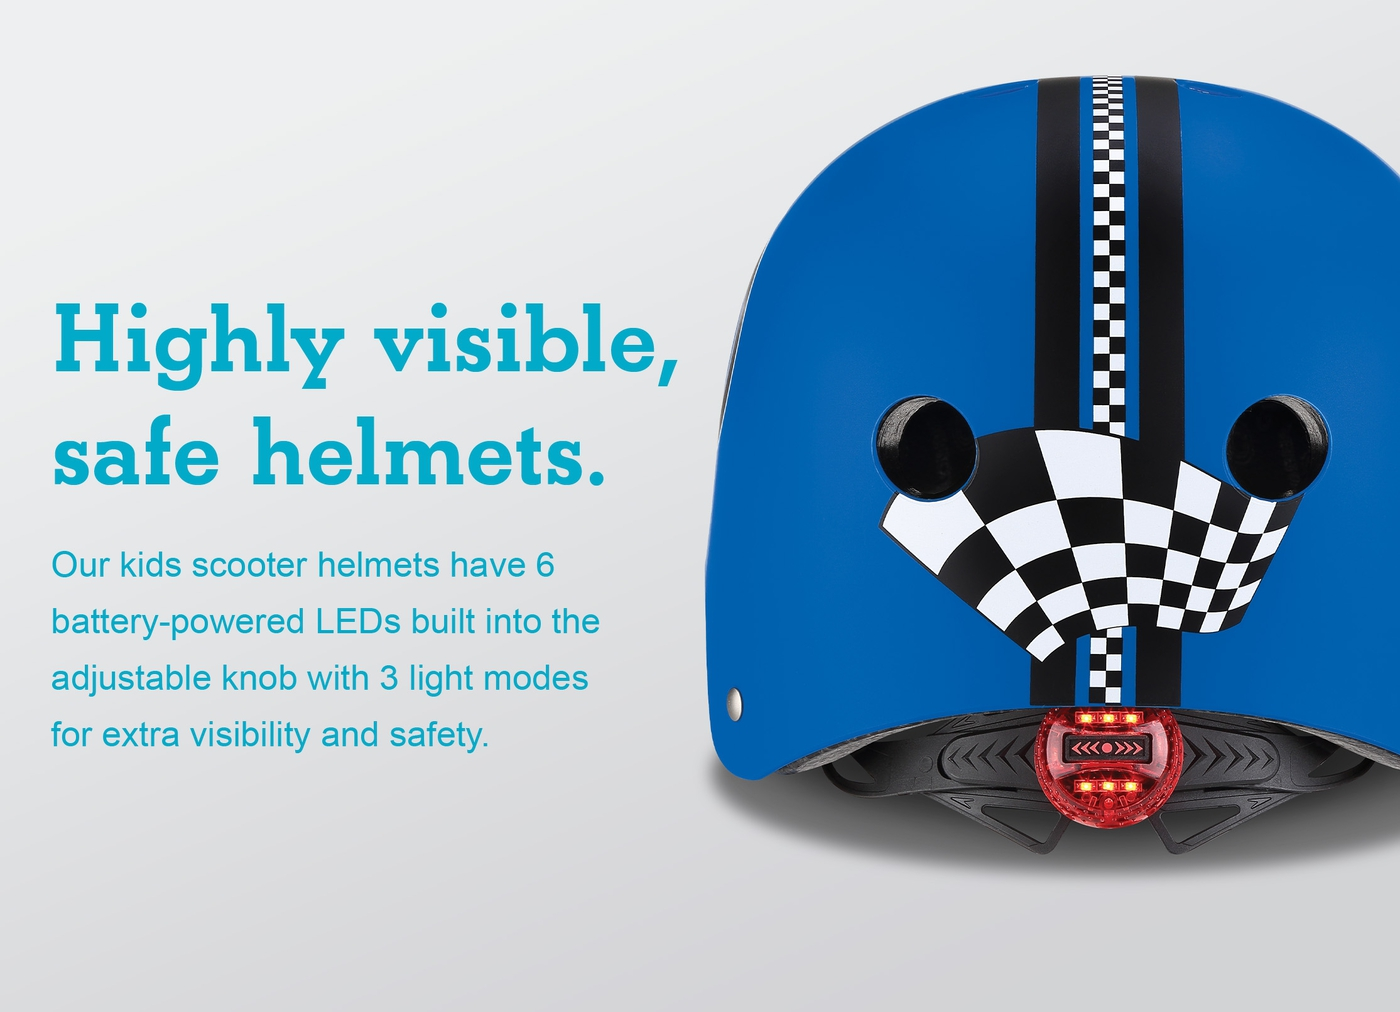 Highly visible, safe helmets.